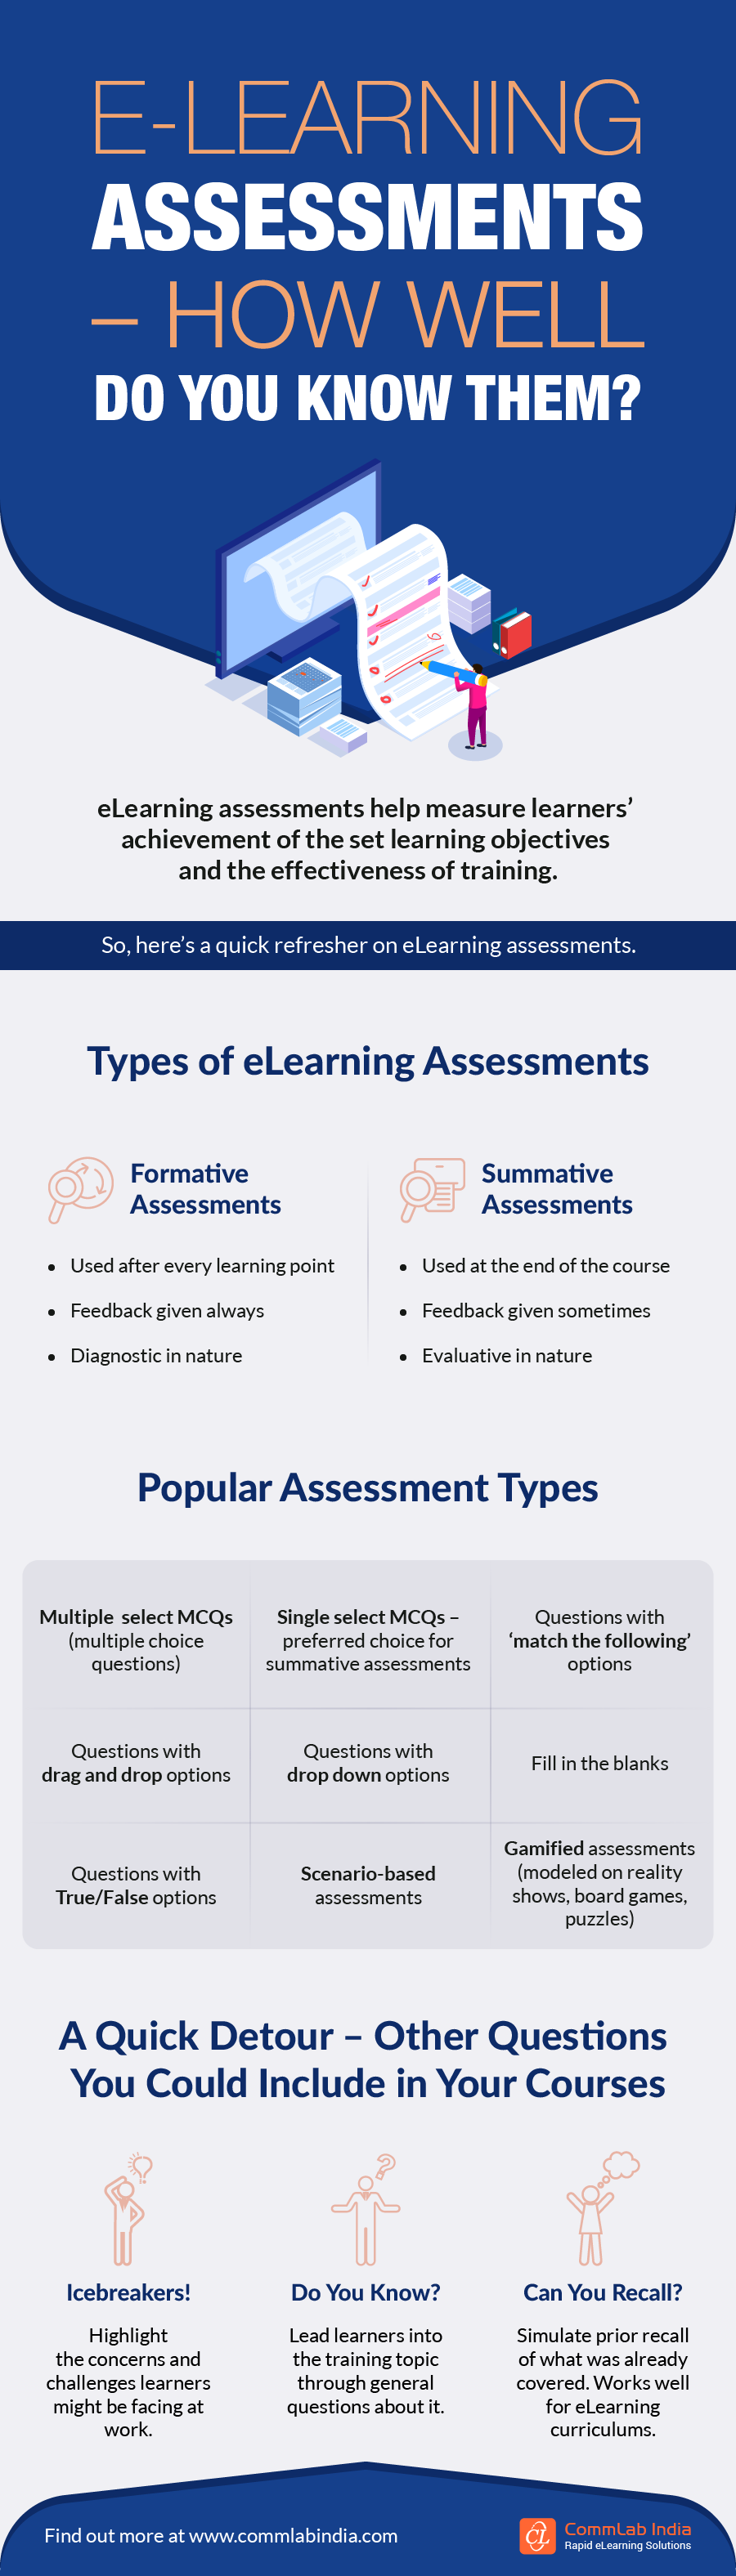 eLearning Assessments – A Quick Refresher